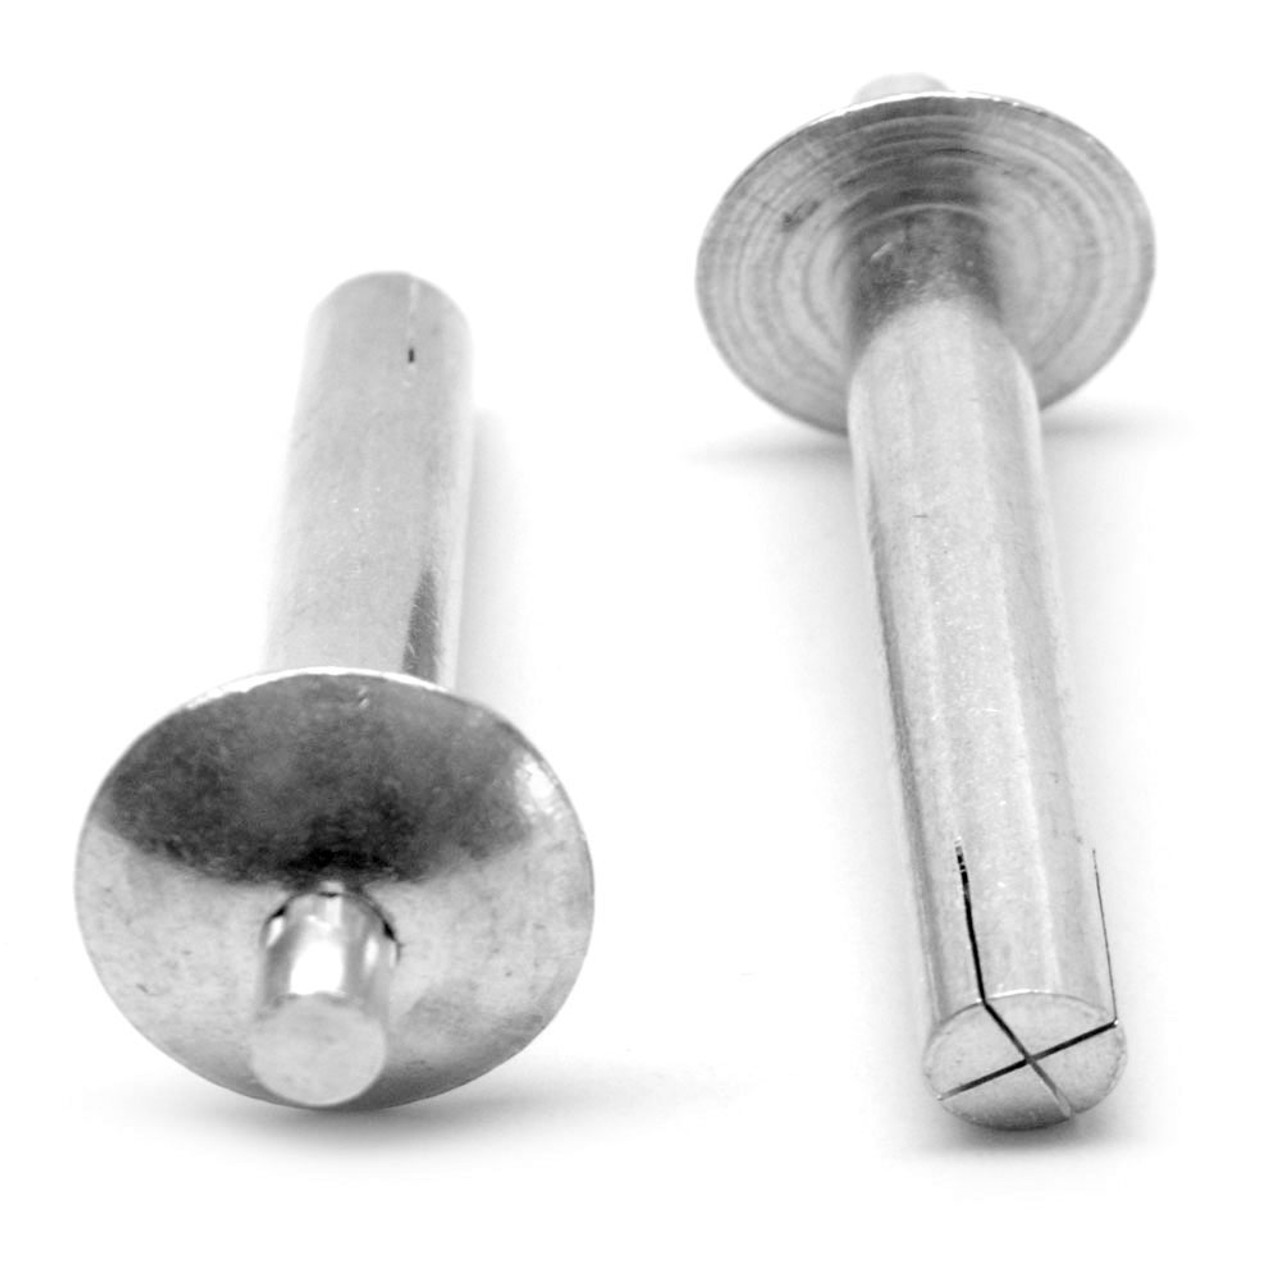 1/4 x 3/16 Drive Pin Rivet Brazier Head with Stainless Pin Aluminum